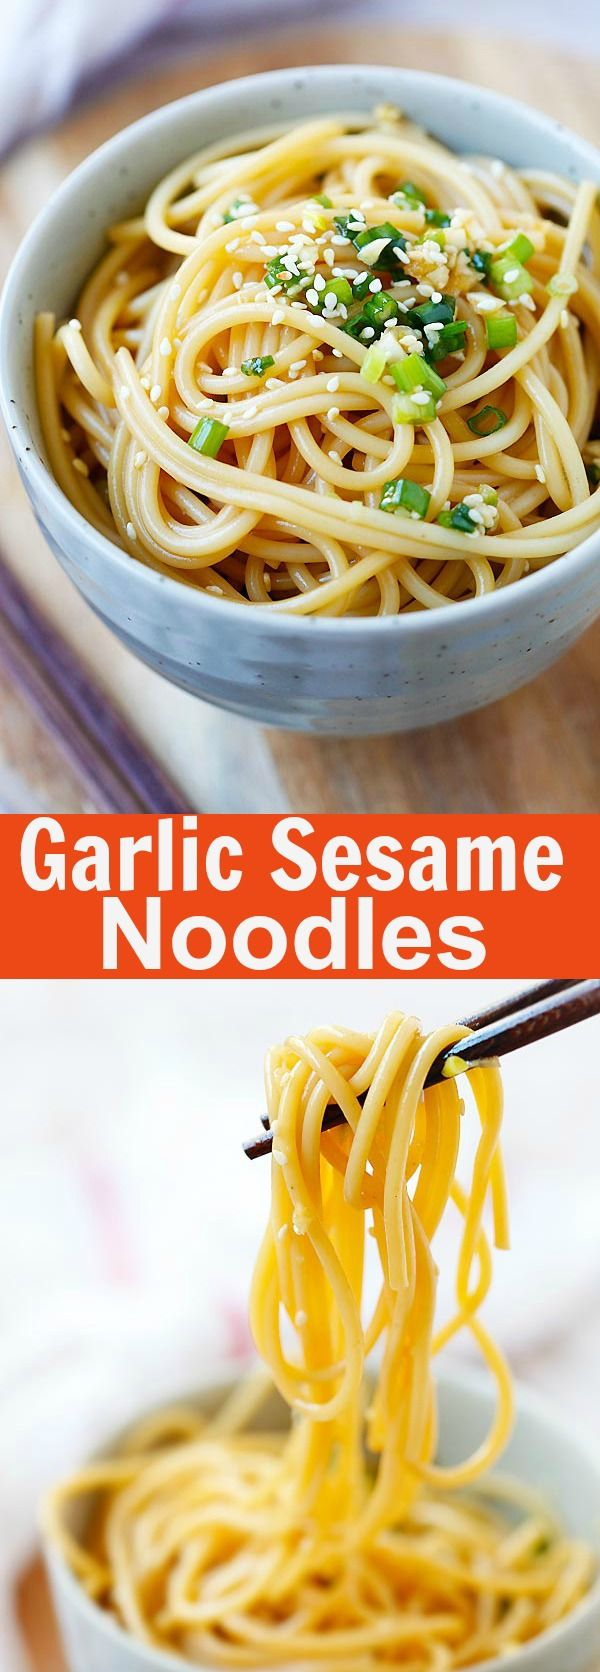 Garlic Sesame Noodles – Asian-flavored spaghetti with soy sauce, oyster sauce, garlic and sesame. Easy and delicious recipe that takes 15 mins to make   rasamalaysia.com